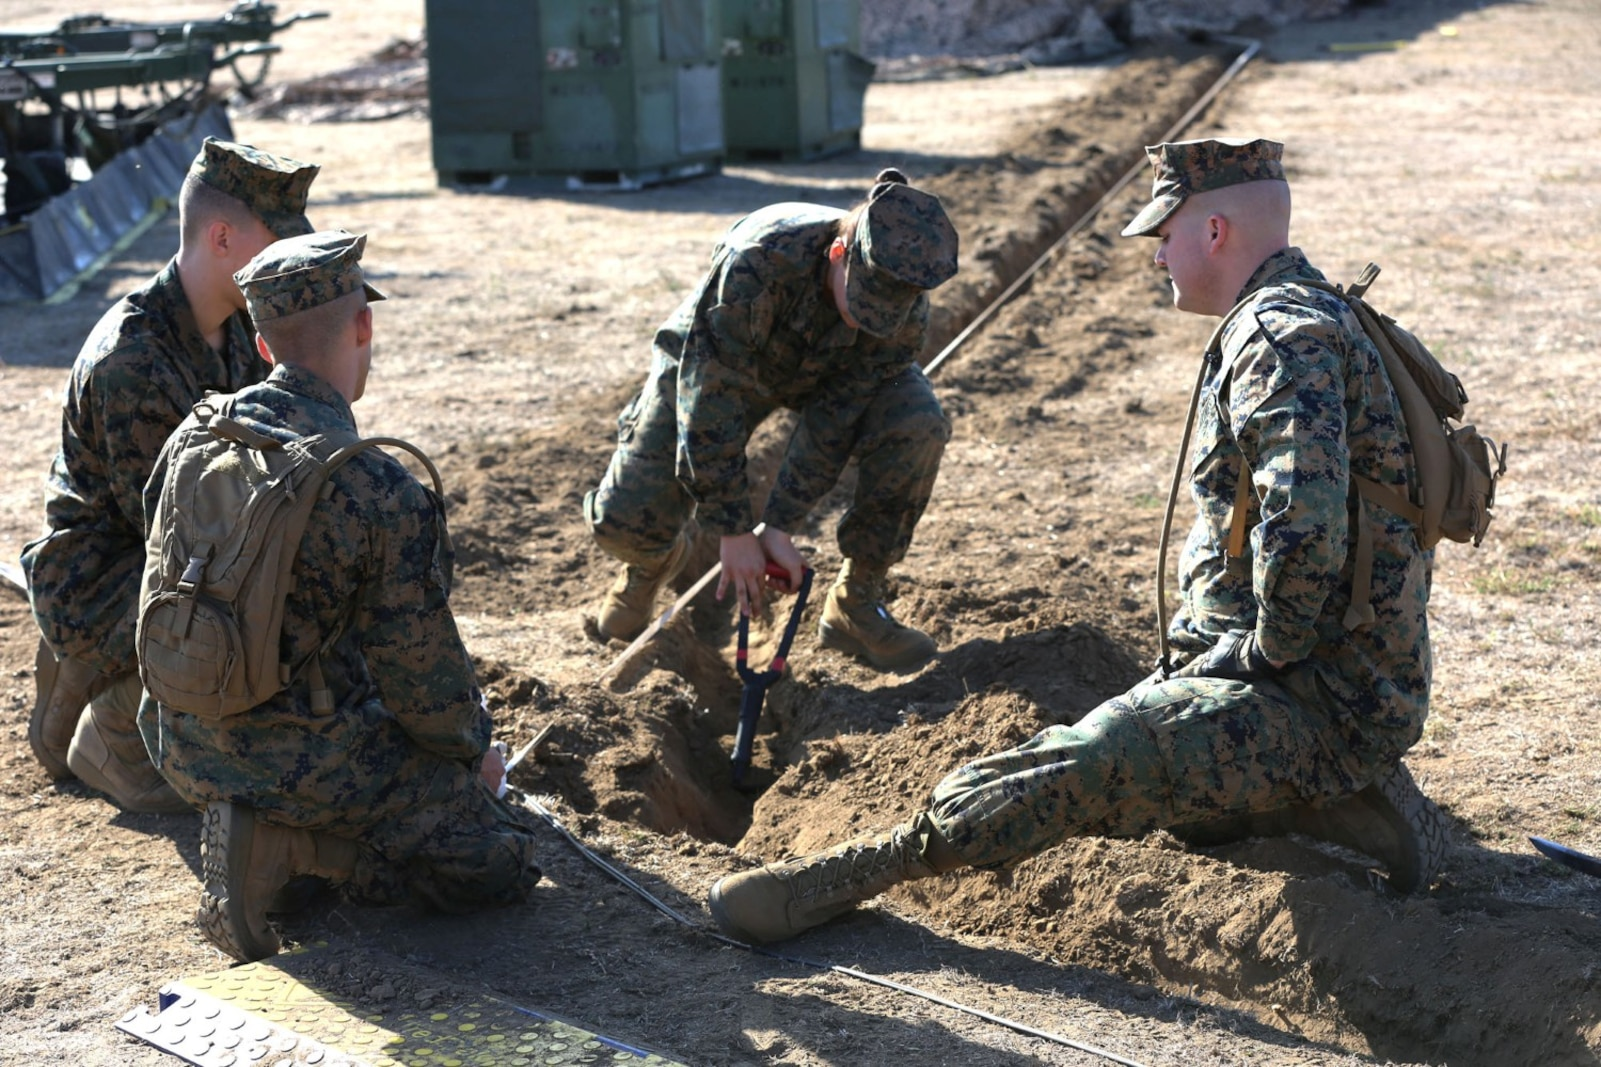 Marines with 1st Marine Expeditionary Brigade dig trenches to lay wires during a combat operations center exercise aboard Camp Pendleton, Calif., Feb. 5. The exercise created a realistic environment for Marines to quickly and effectively establishes a center of operations.